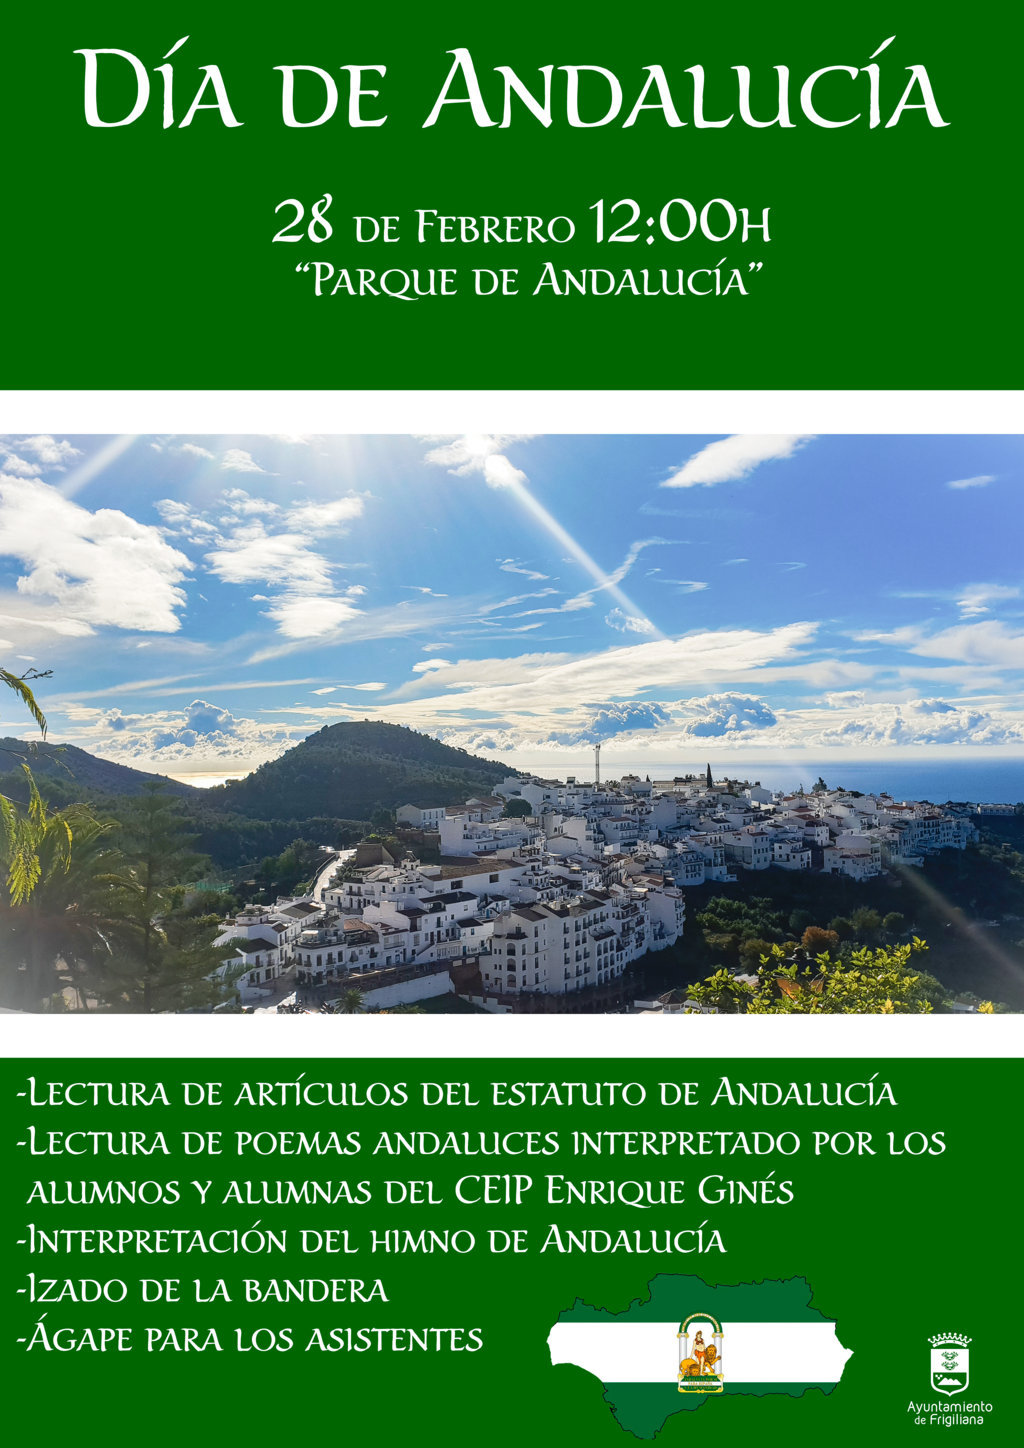 Day of Andalusia